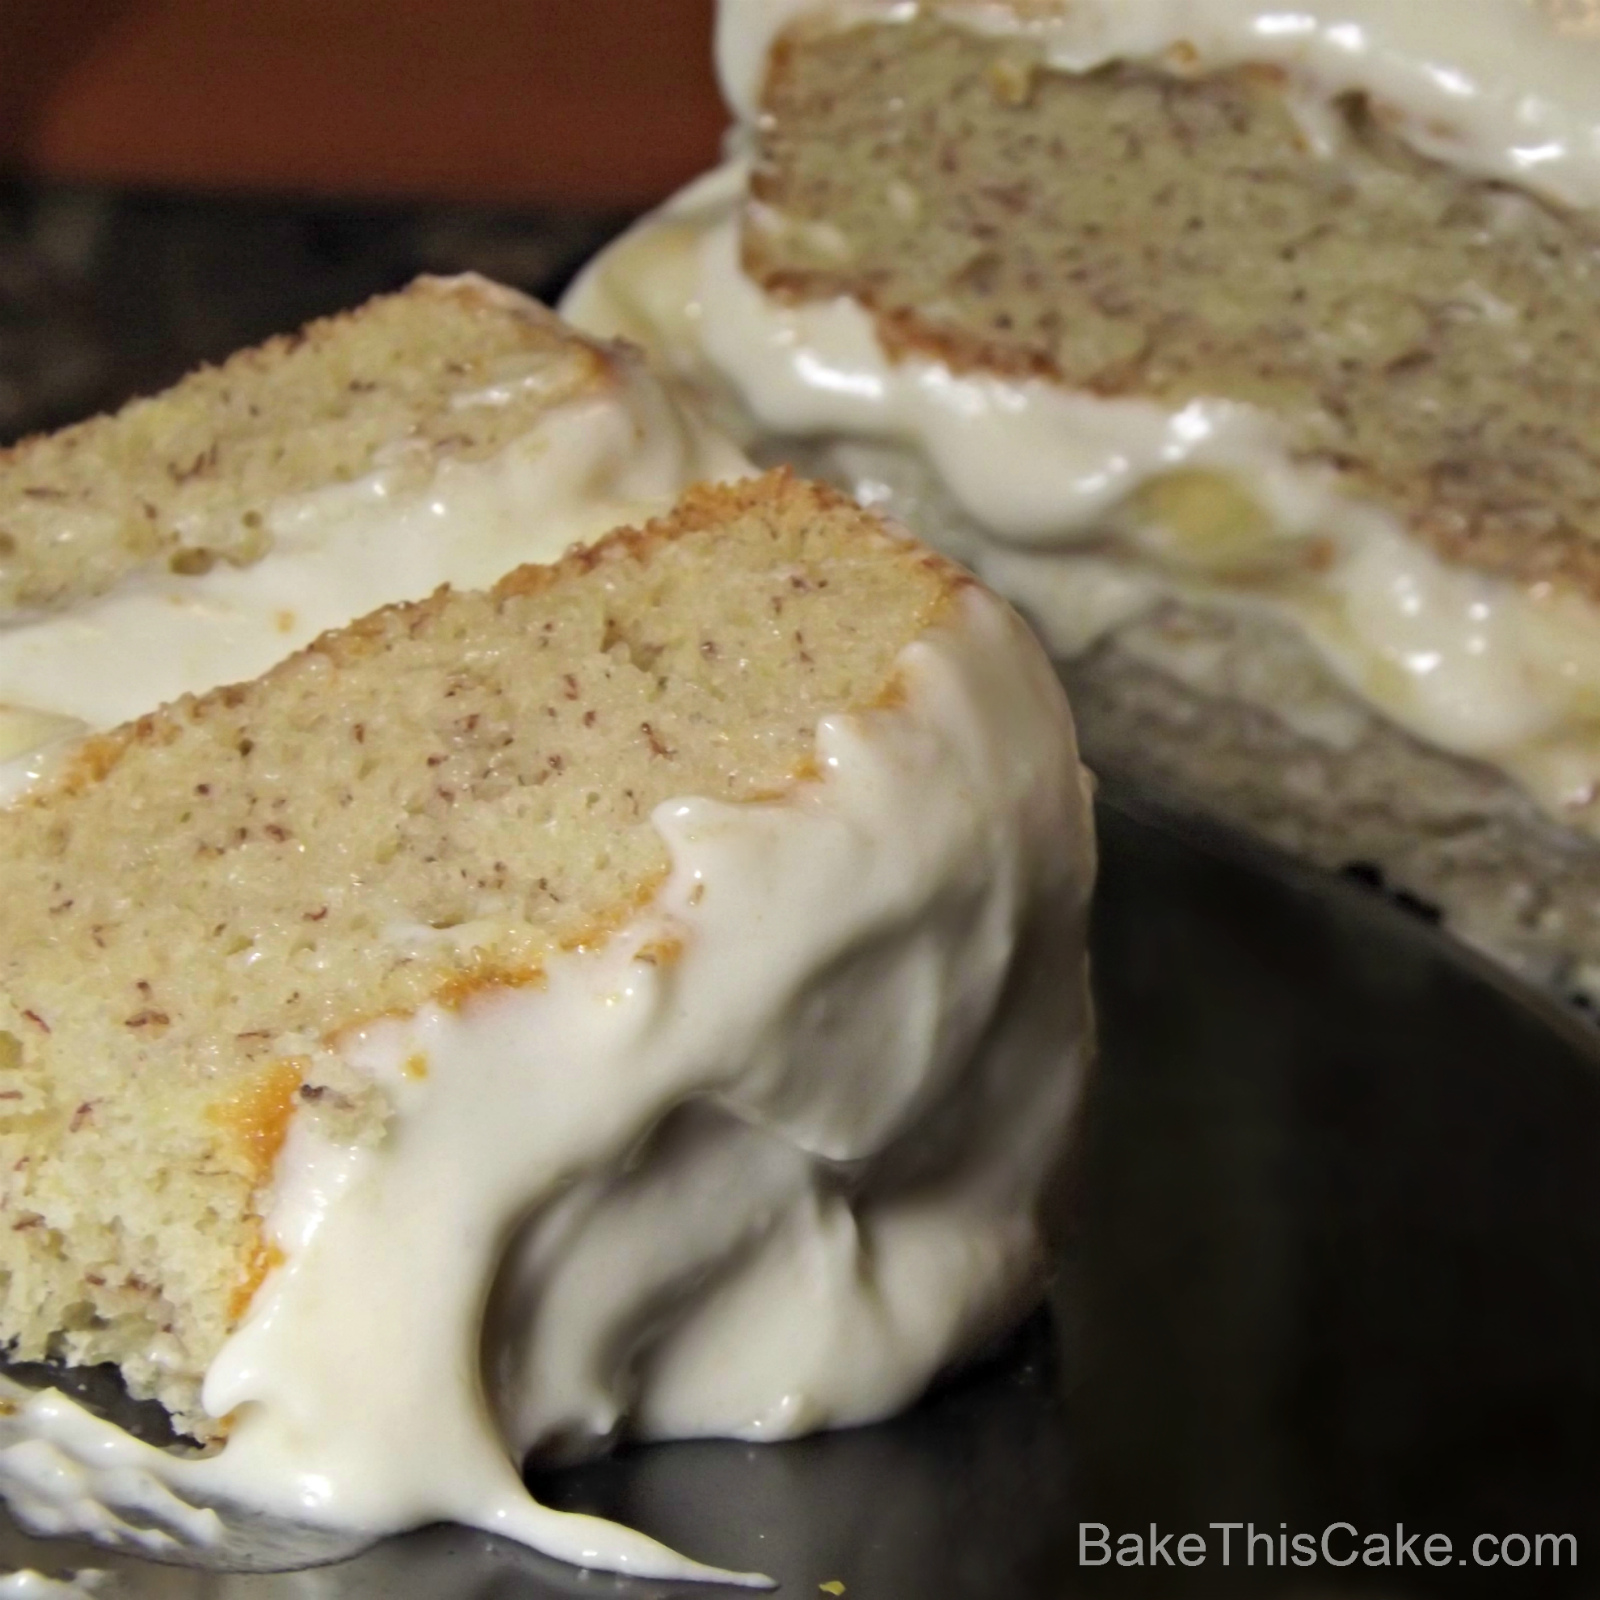 Betty's Banana Layer Cake Recipe – A Vintage Cake Loaded with ...